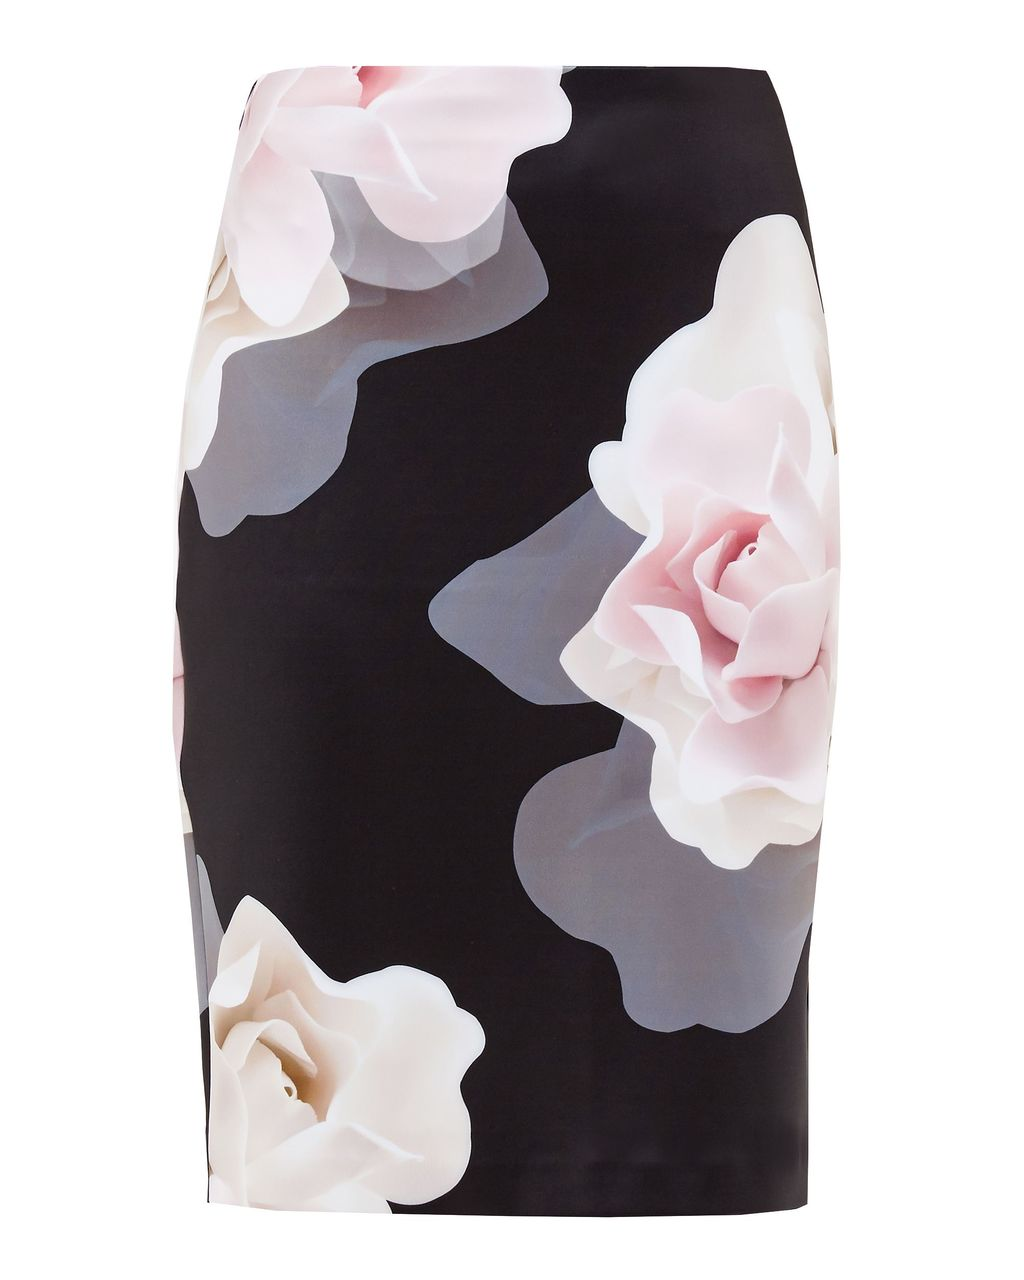 Kanara Porcelain Rose Pencil Skirt, Black - style: pencil; fit: tailored/fitted; waist: mid/regular rise; secondary colour: blush; predominant colour: black; occasions: evening, occasion; length: just above the knee; fibres: polyester/polyamide - stretch; pattern type: fabric; pattern: florals; texture group: jersey - stretchy/drapey; pattern size: big & busy (bottom); season: a/w 2016; wardrobe: event